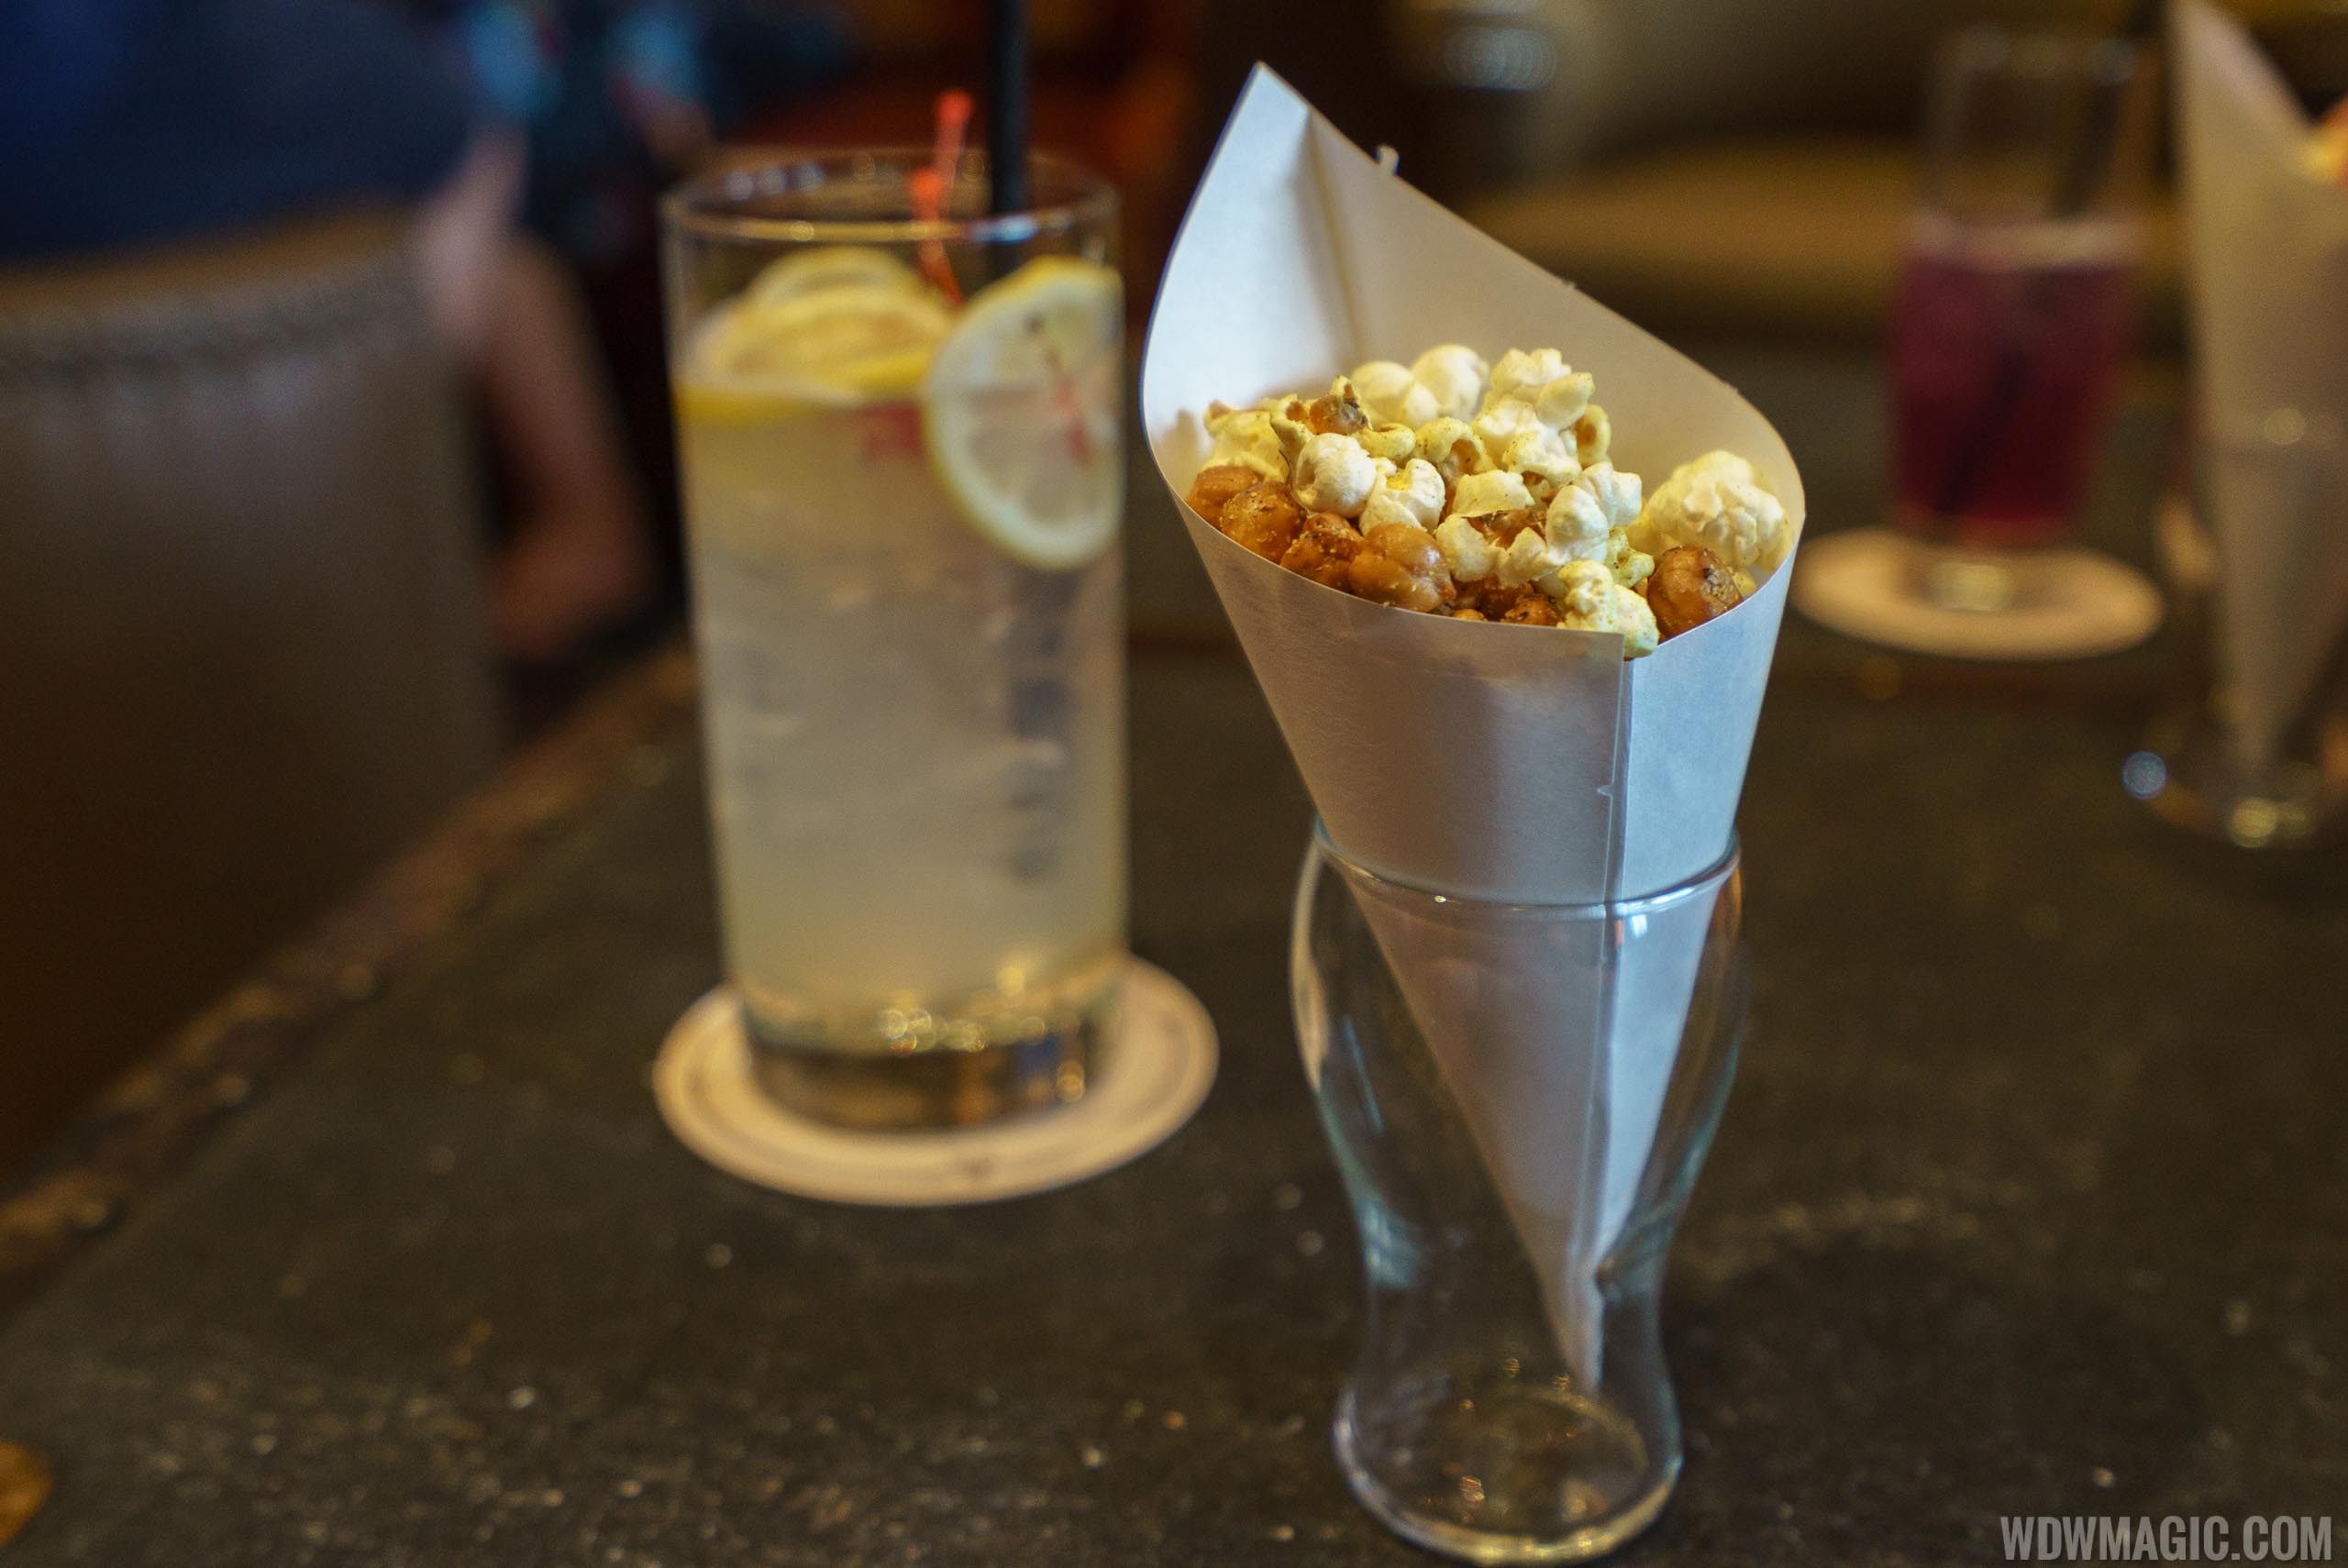 AbracadaBAR Complimentary popcorn and chick peas